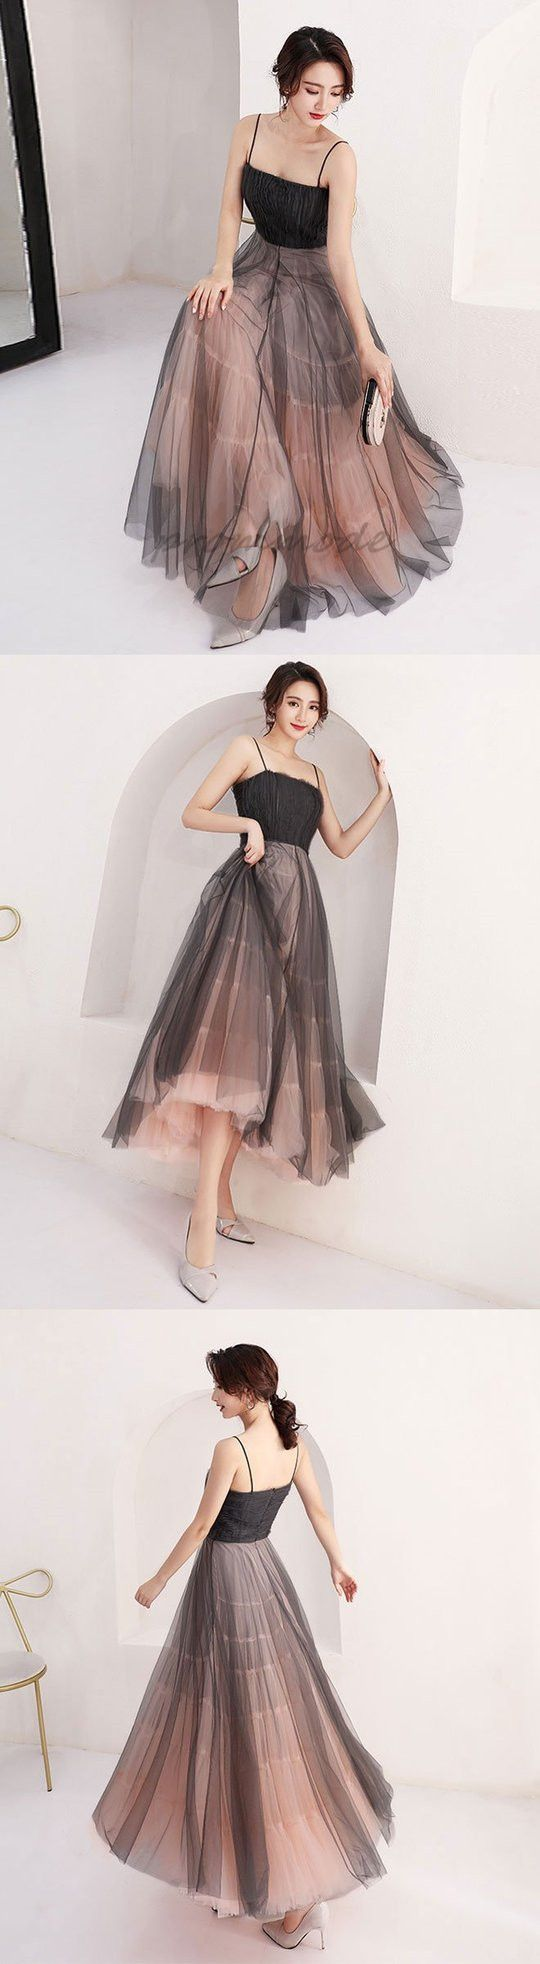 Cute black tulle short prom dresses with strapshomecoming dresses